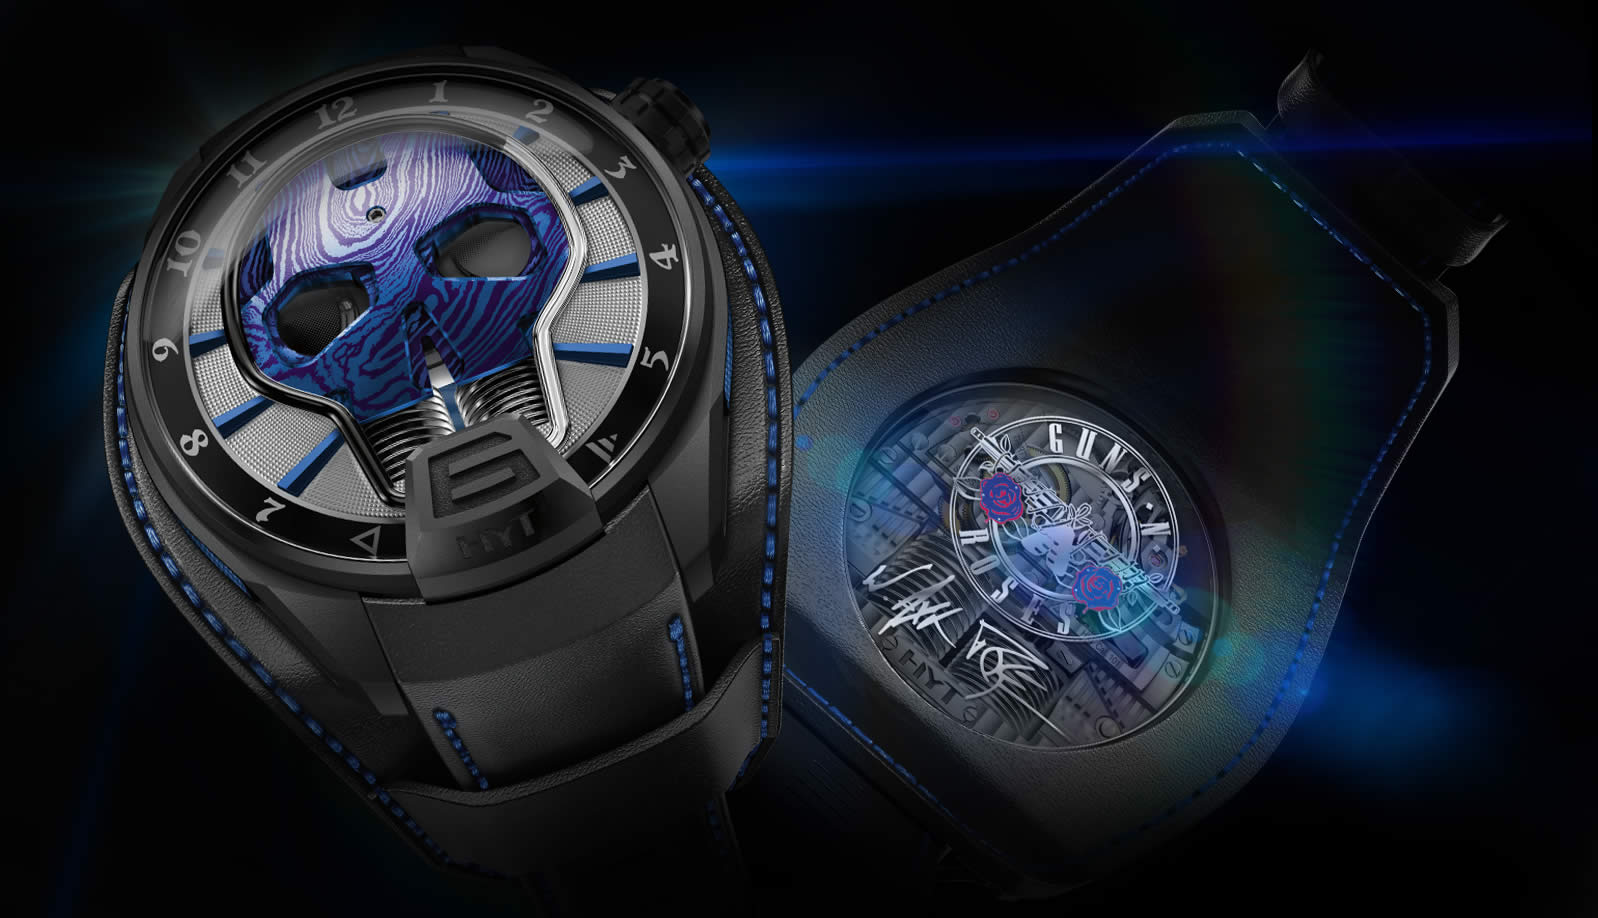 Luxury Watches HYT Skull Axl Rose Limited Edition